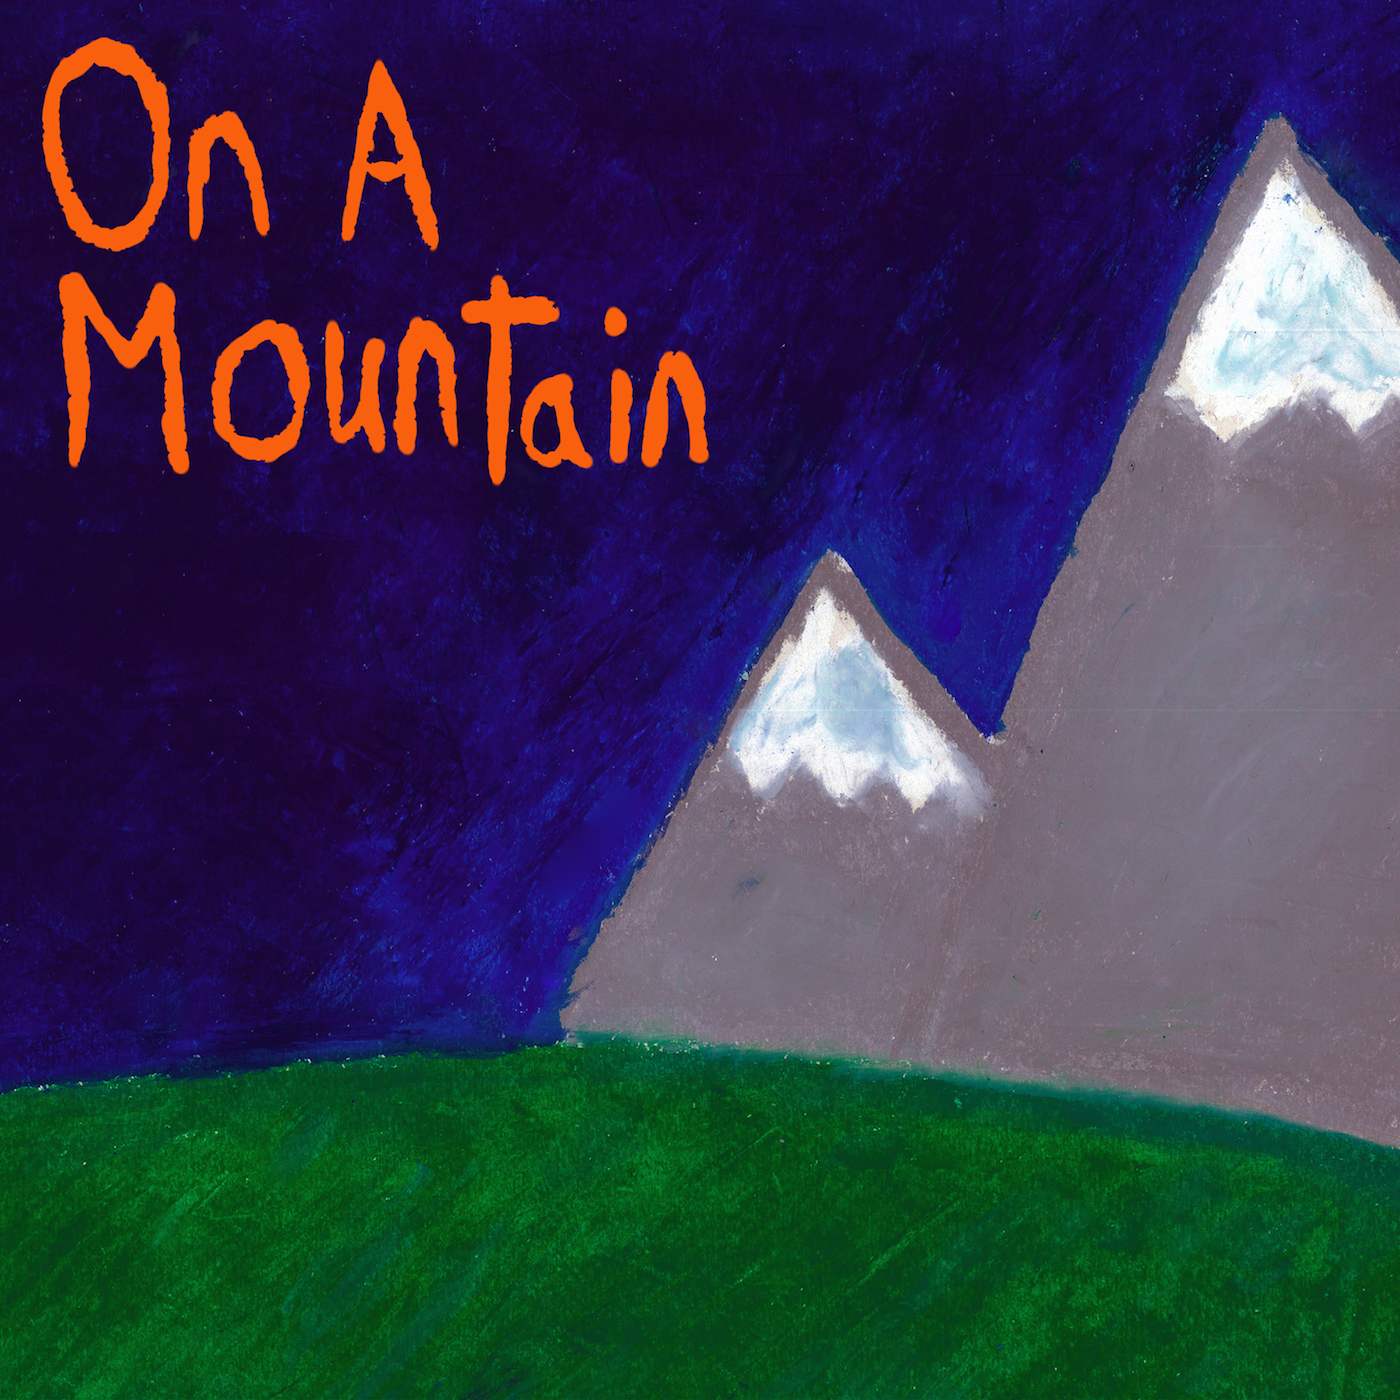 On A Mountain is the Debut EP from Half/Brother. Recorded over a long winter in Boston and New York City, it is a promising initial entry into the canon of Cosmic folk and country. Available through all digital outlets August 25.